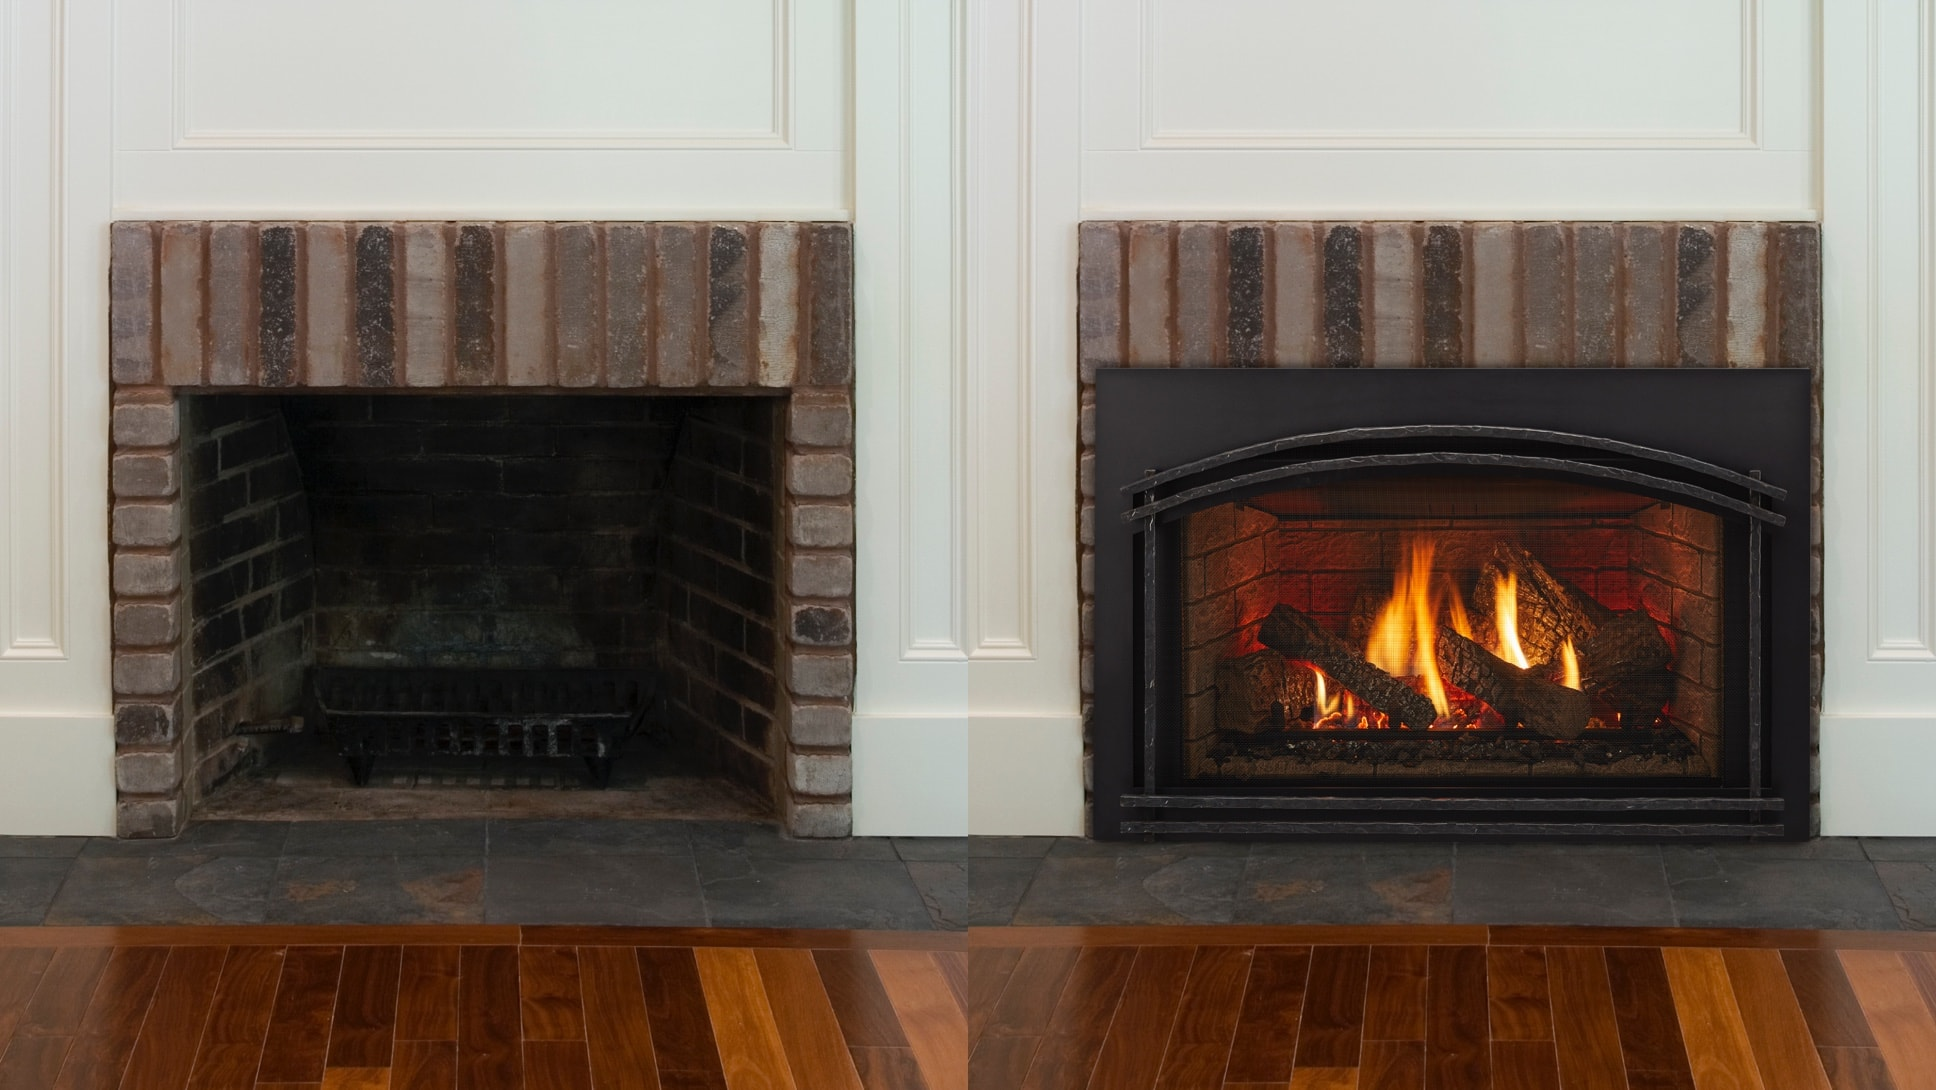 fireplace inserts quadra fire rh quadrafire com quadra-fire fireplace insert for sale quadra-fire 5100i fireplace insert